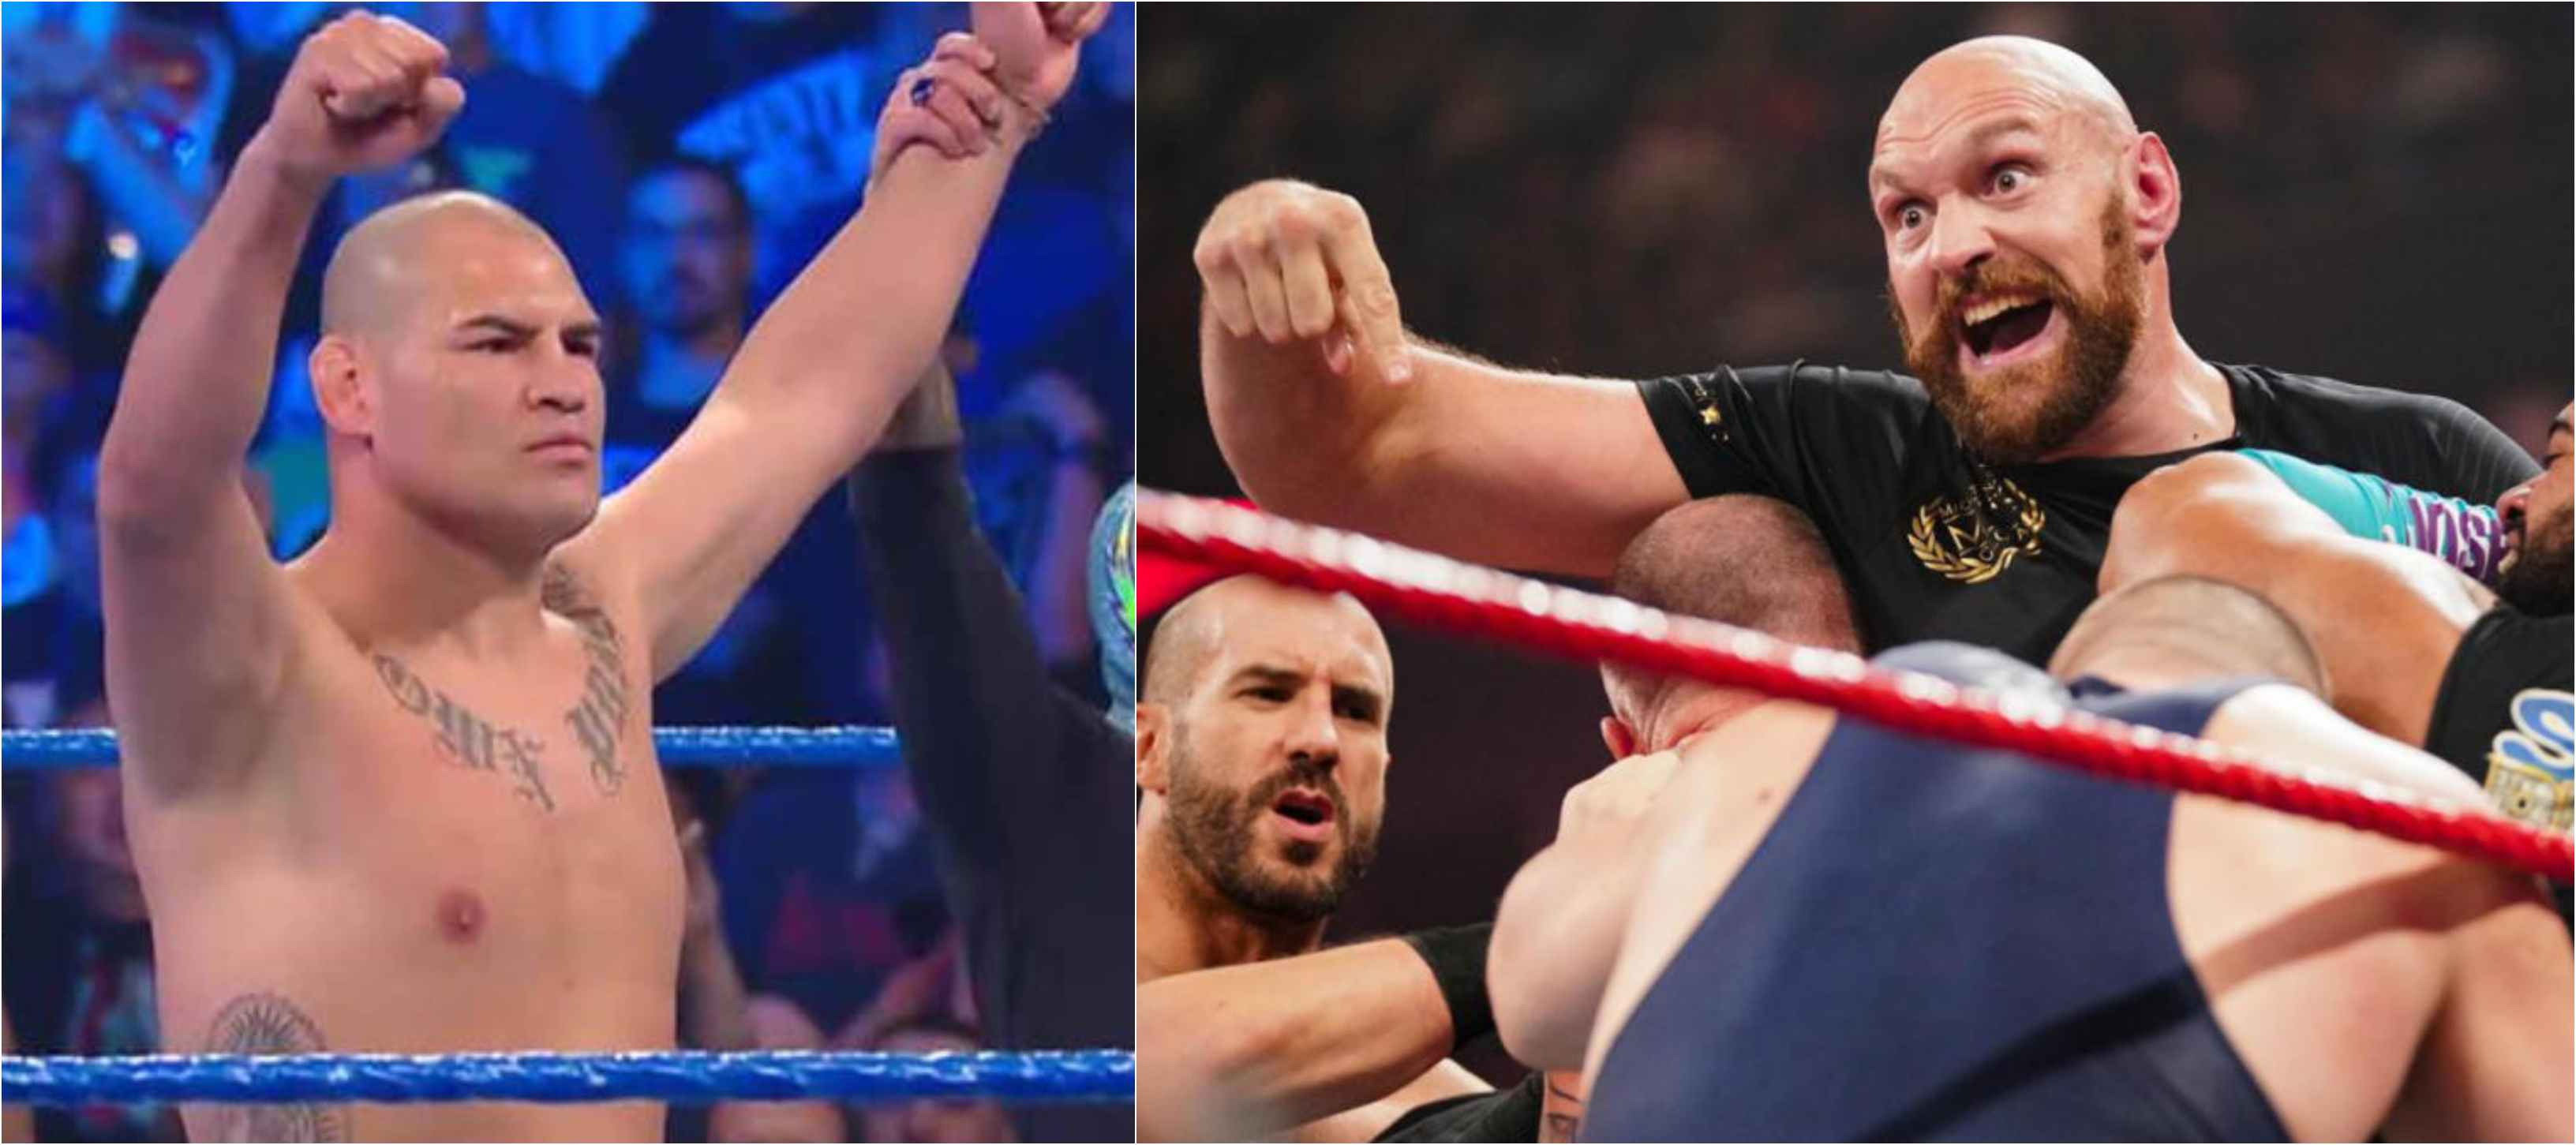 Tyson Fury interested in fighting Cain Velasquez - in WWE! - Tyson